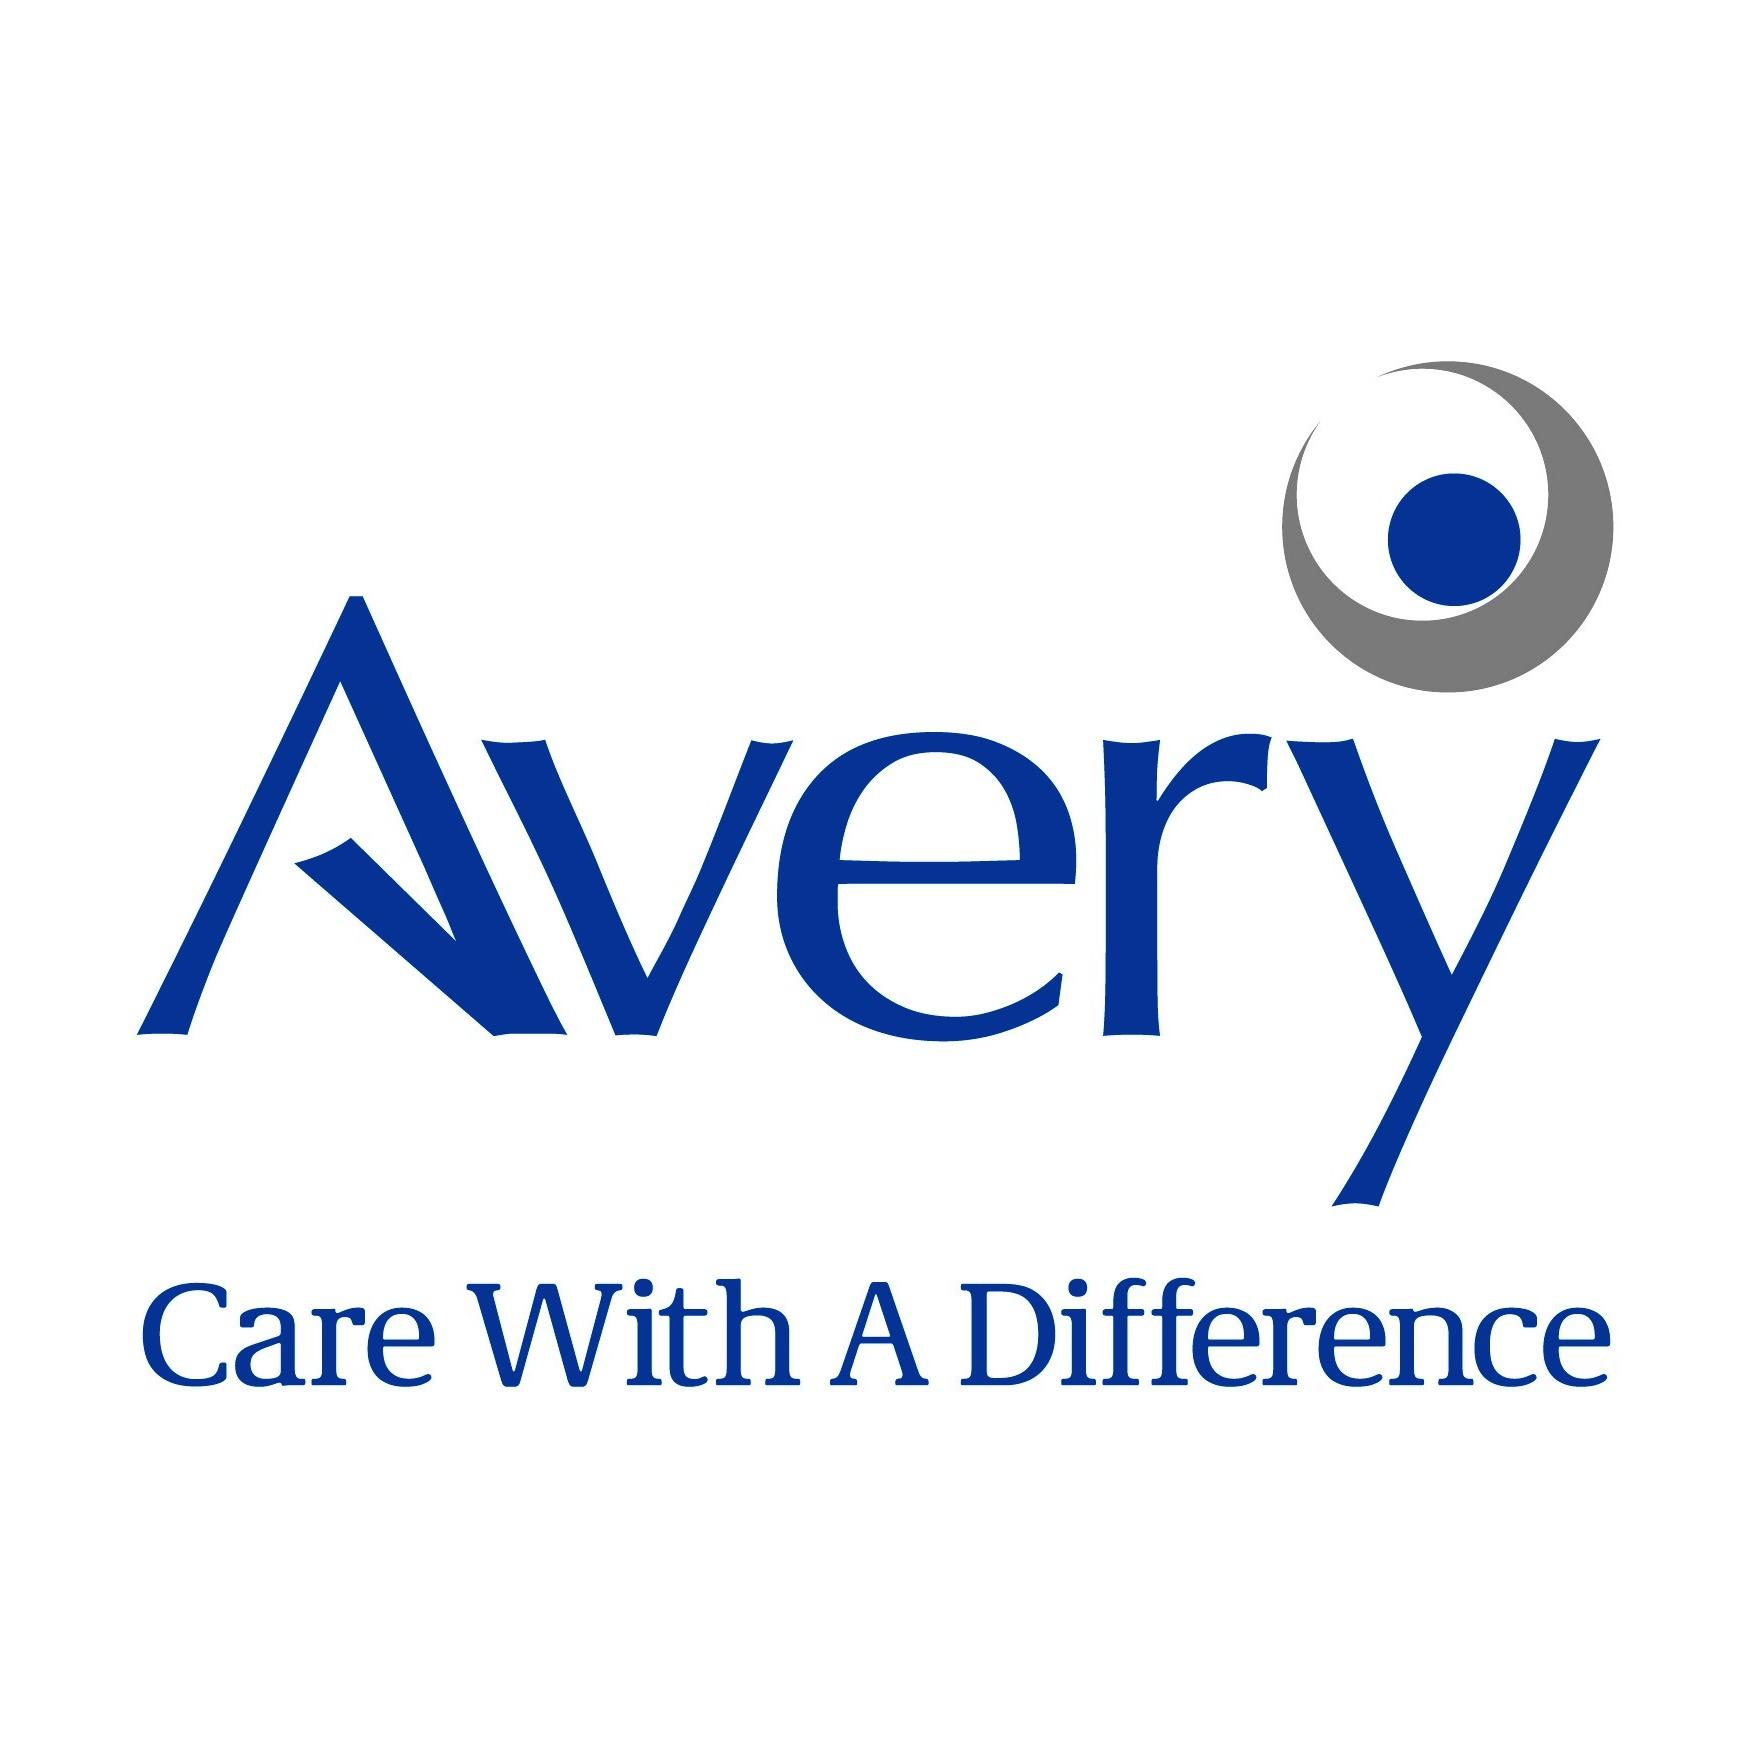 Acer House Care Home - Weston-Super-Mare, Somerset BS22 8AA - 01934 637350 | ShowMeLocal.com